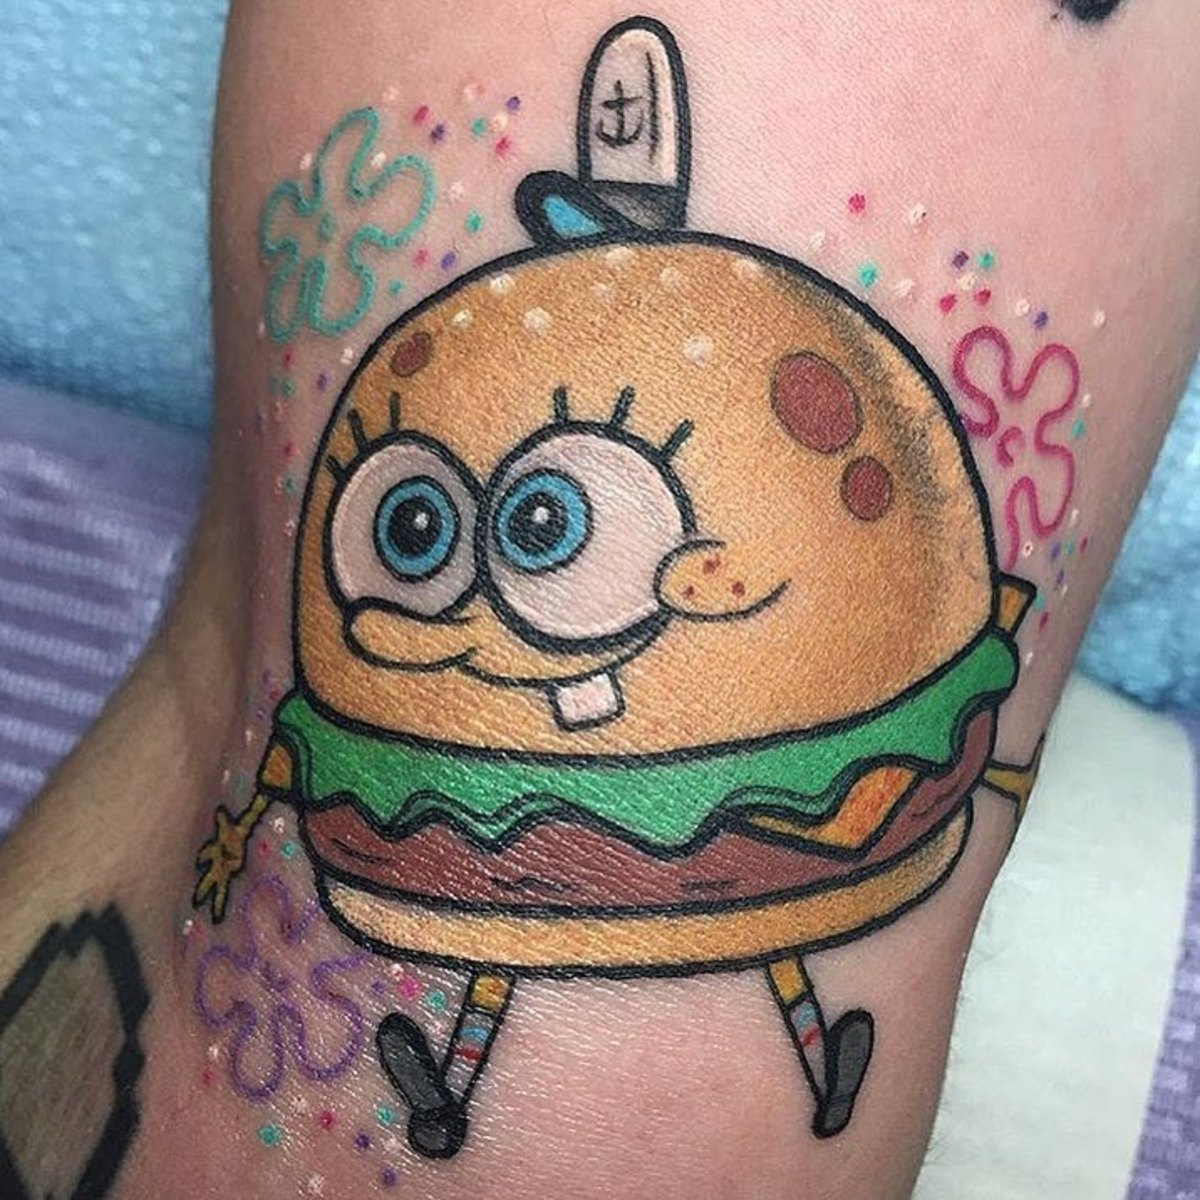 Who lives in a pineapple under the sea? Sponge Bob Cheese Burger! Tattoo by Alex Strangler